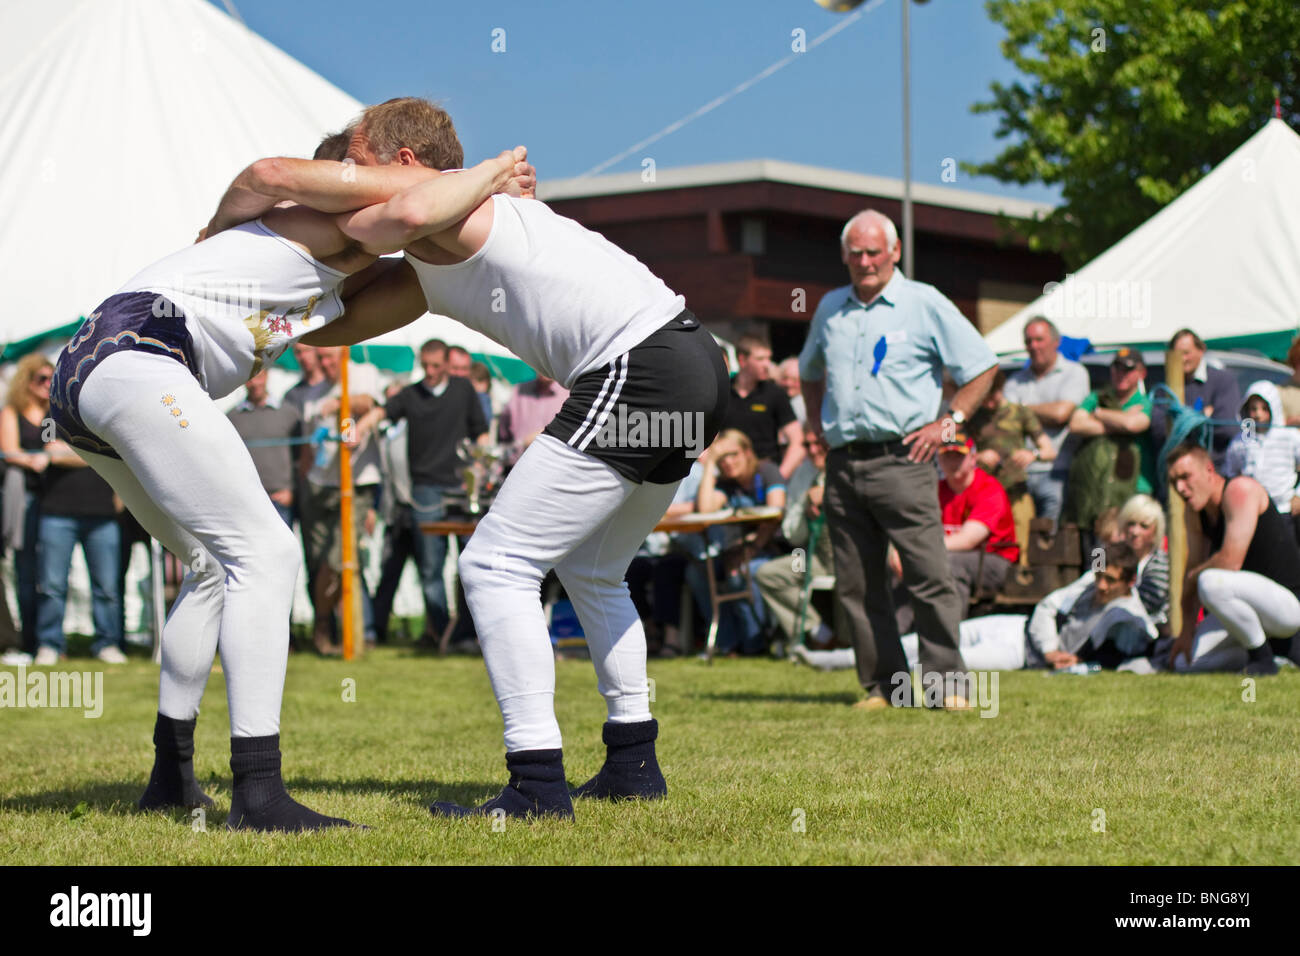 Young men engaged in 'Cumberland Wrestling' at the Northumberland County Show in Corbridge, England - Stock Image